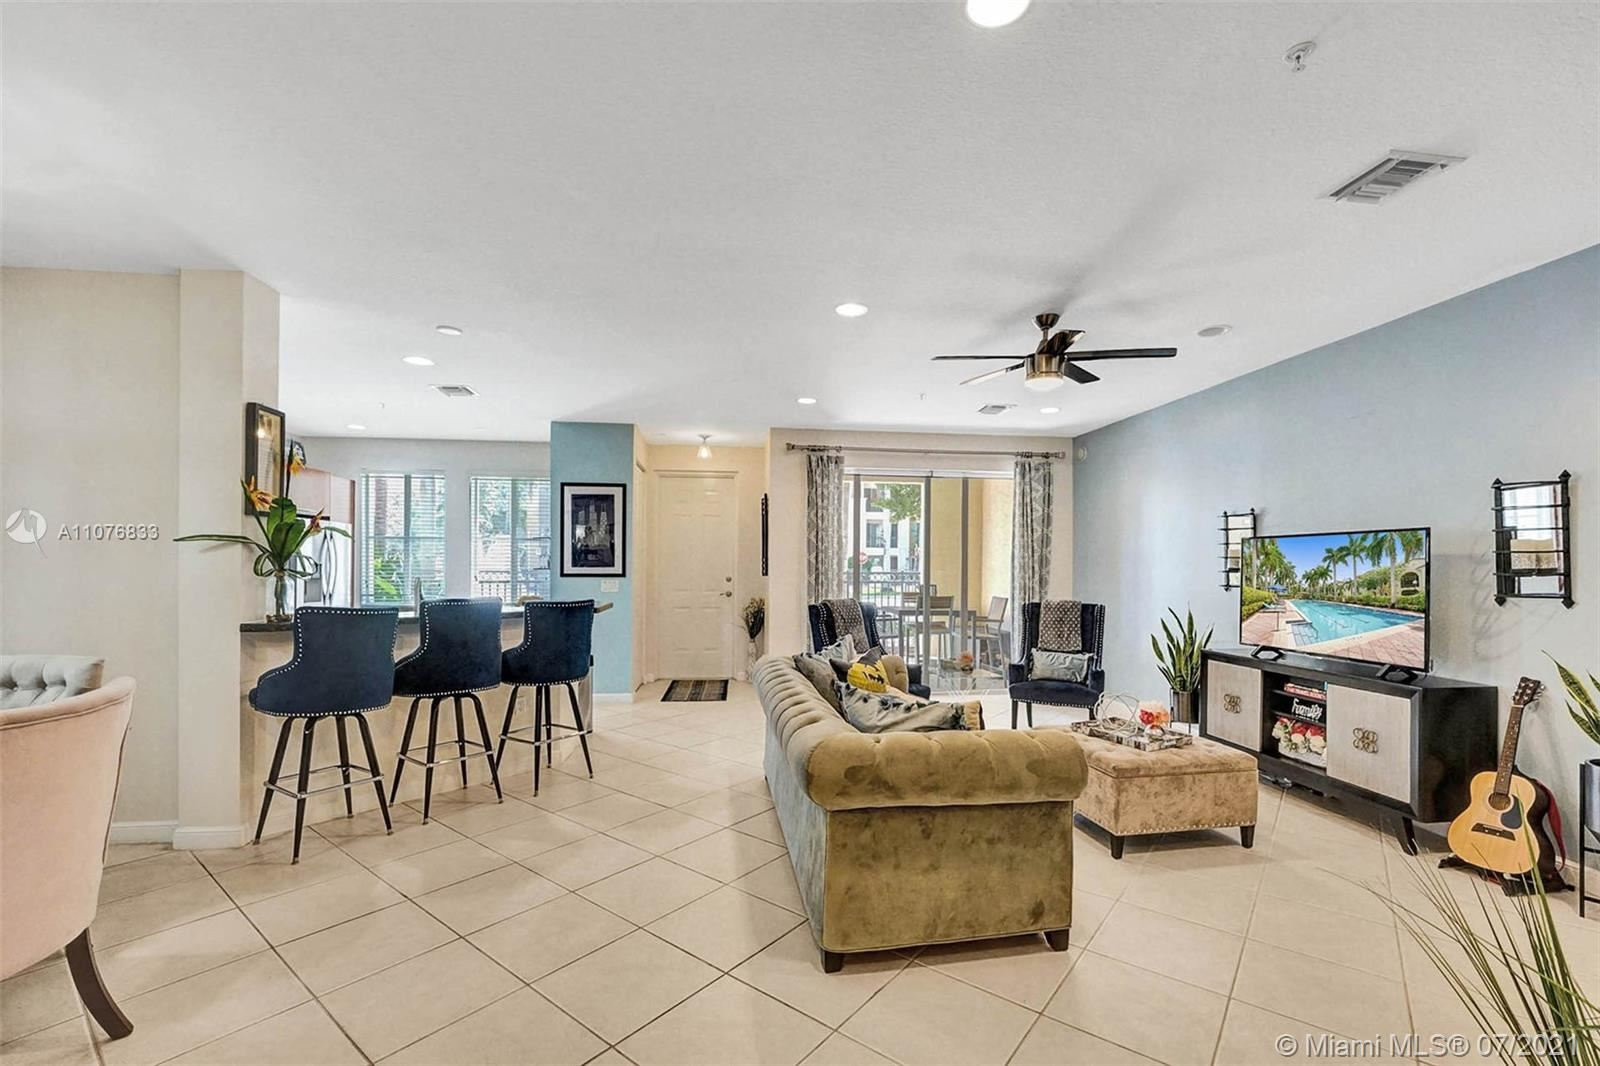 Photo of 2901 NW 126th Ave #2-108, Sunrise, FL 33323 (MLS # A11076833)